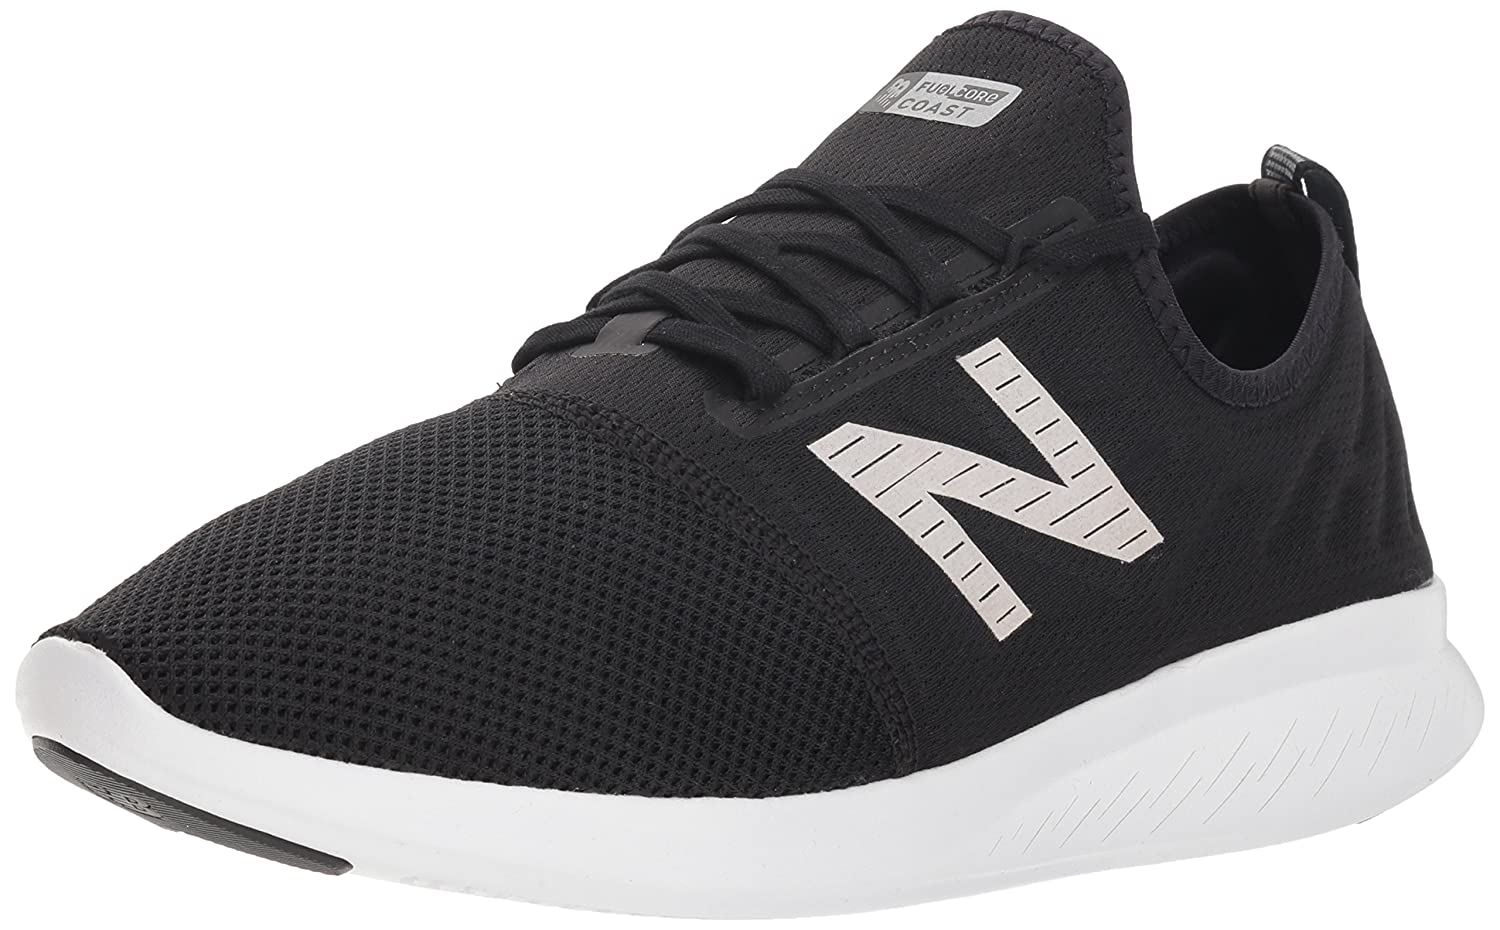 on sale 32bc2 b5e8e Amazon.com   New Balance Men s Coast V4 FuelCore Athletic Shoe Running    Road Running